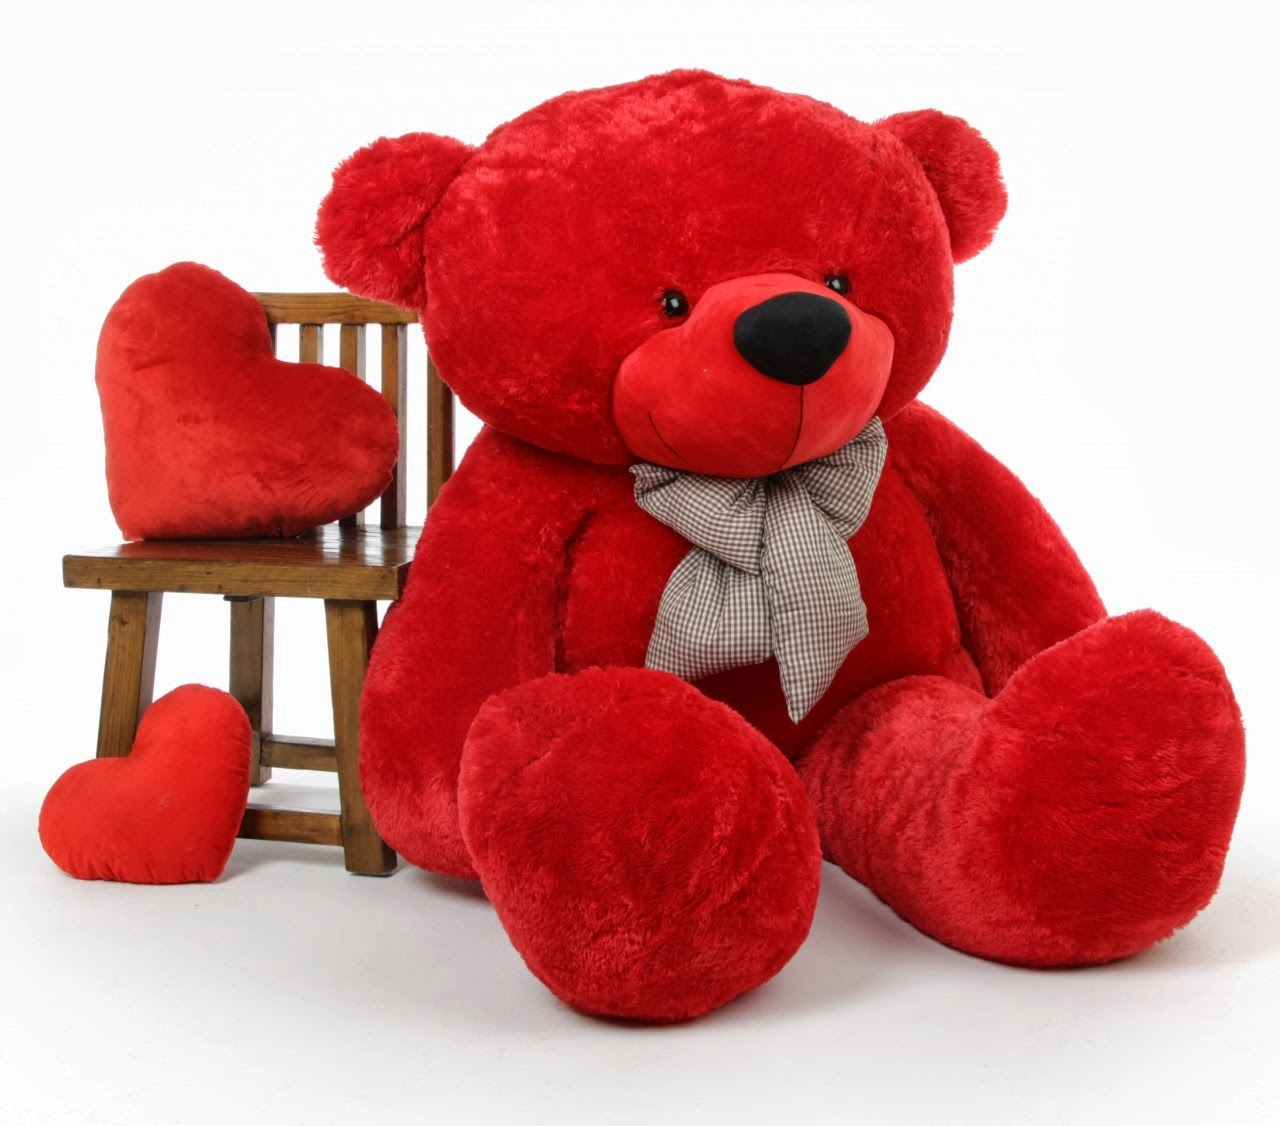 thats bitsy cuddles from giant teddy ill admit her red teddy bear fur makes her pretty for valentines day but green is great too willy shags - Giant Teddy Bear For Valentines Day